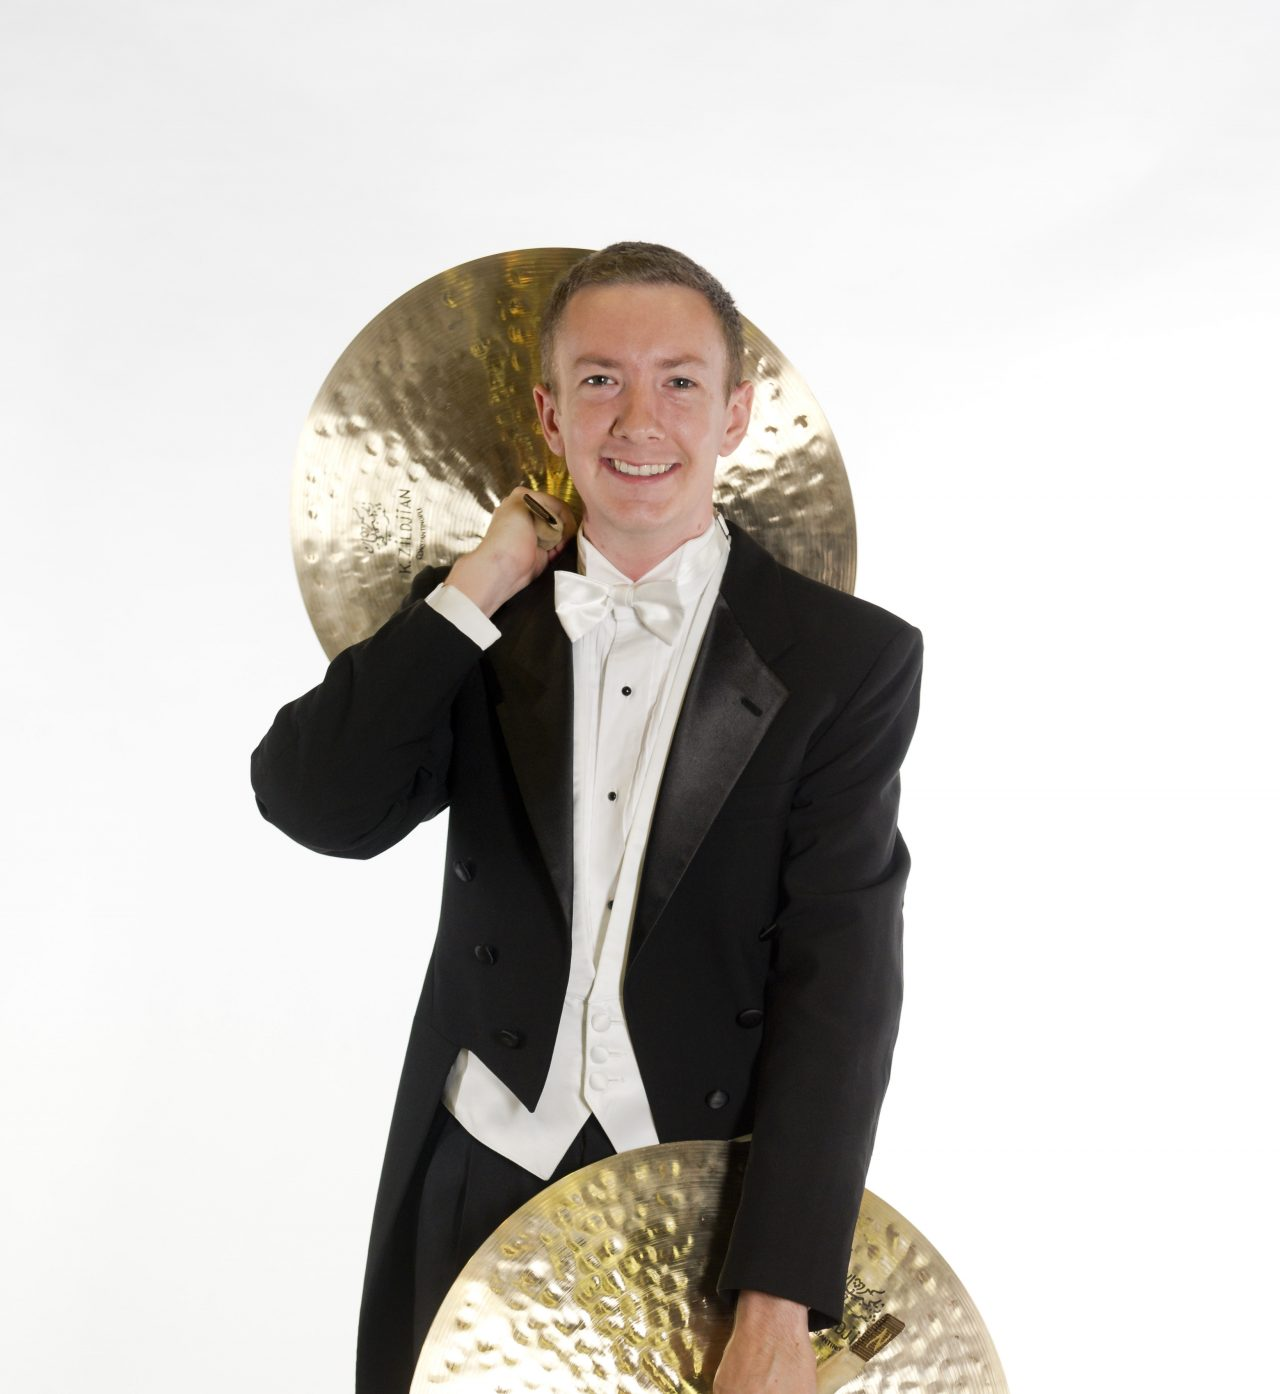 Chad Crummel, Principal Percussion